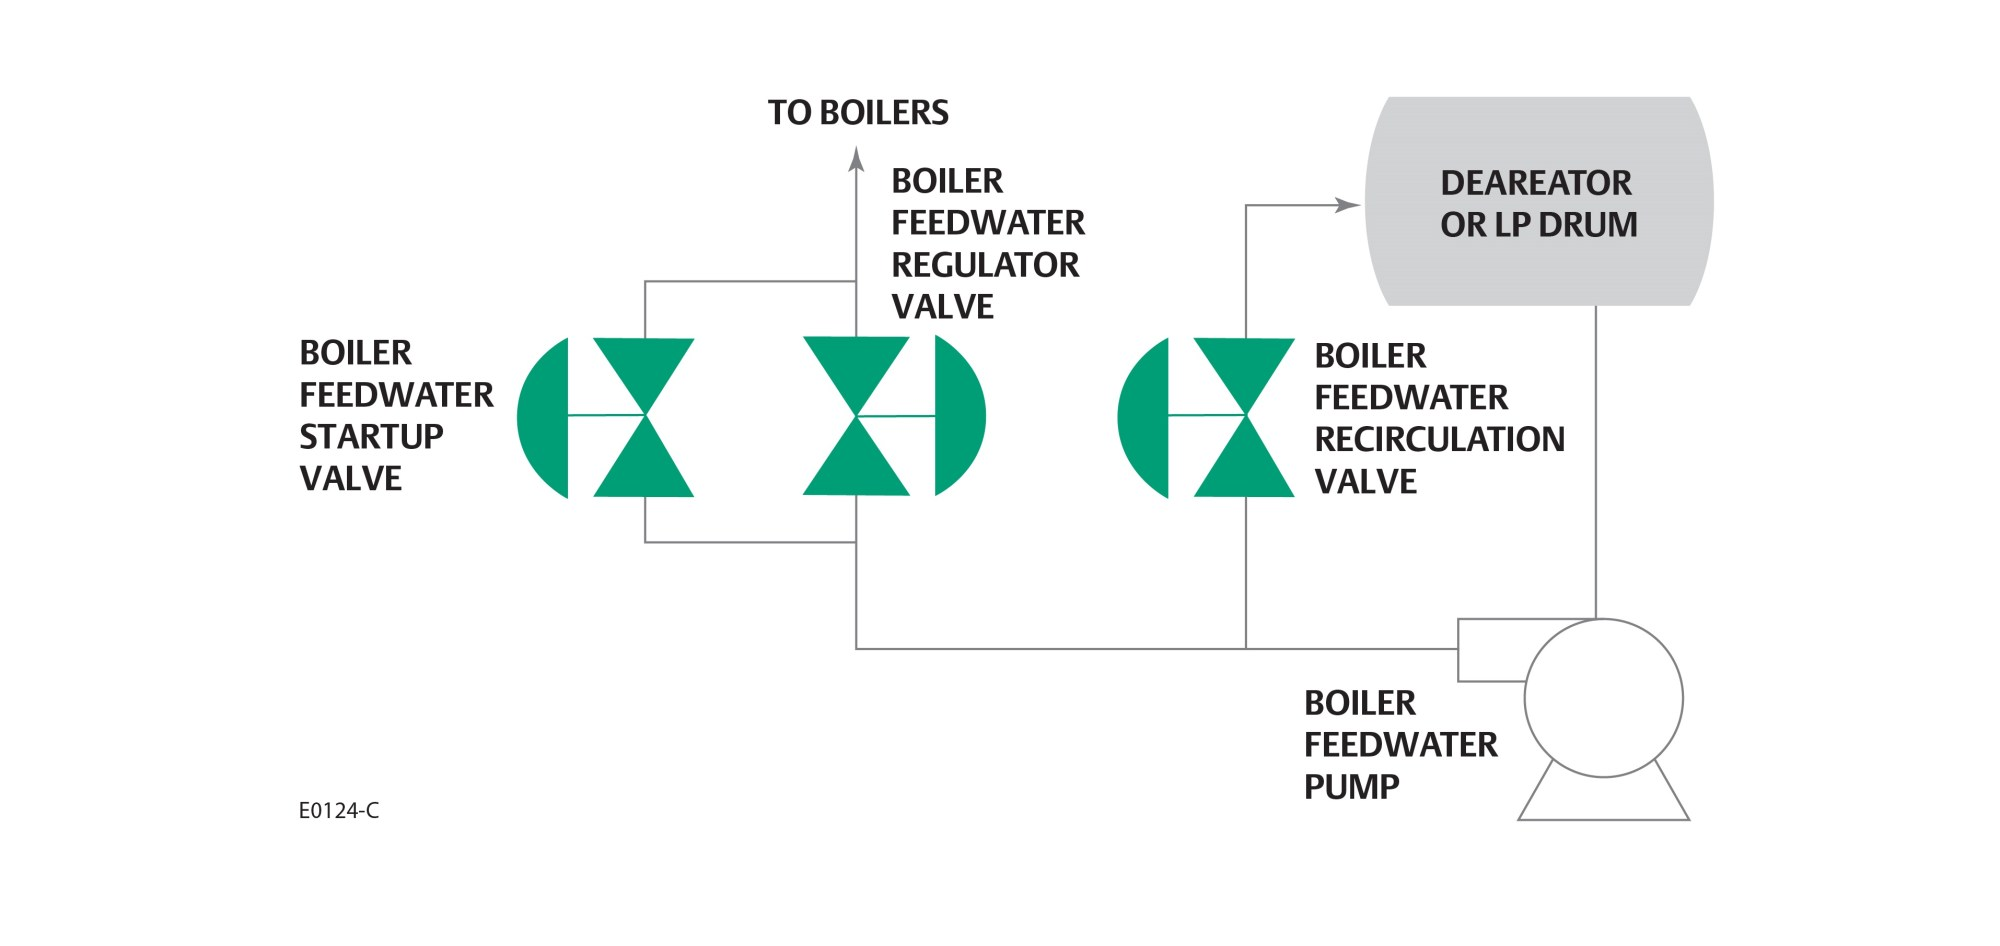 hight resolution of initial conditions will require cavitation and fine flow control from the startup valve over a wide range of flow and pressure conditions